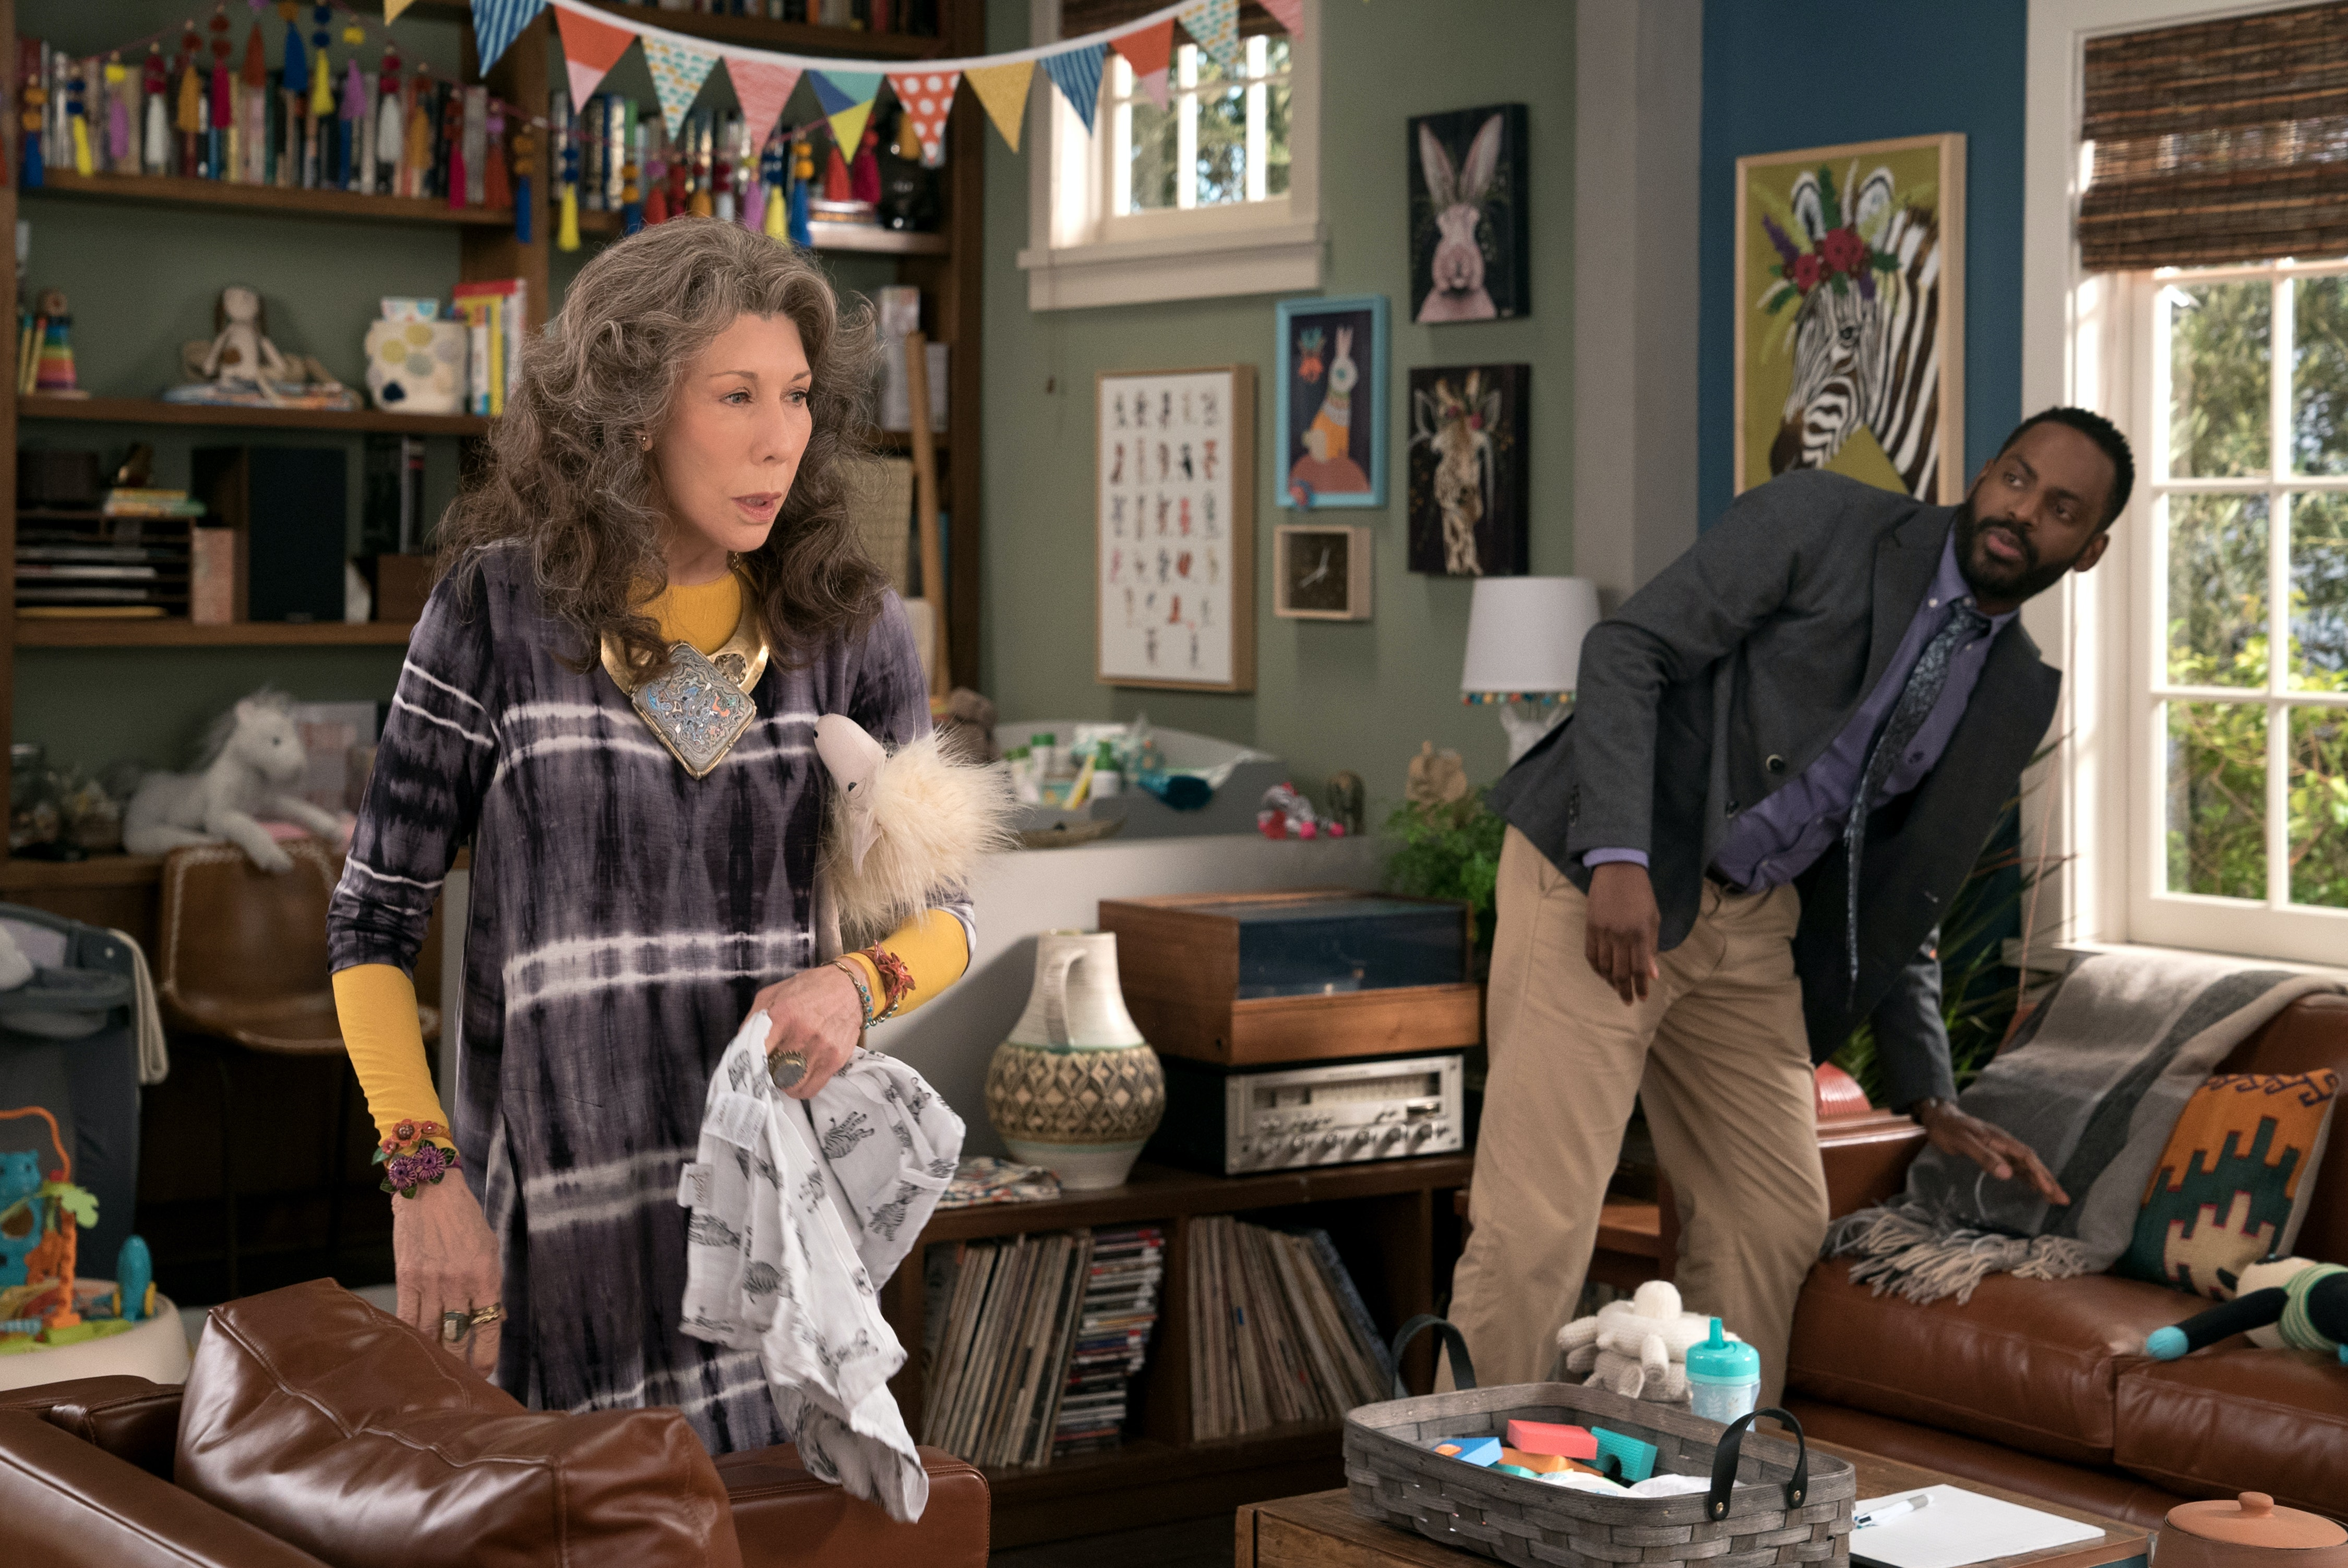 The Kids On Grace And Frankie Might Be Taking Things Too Far In